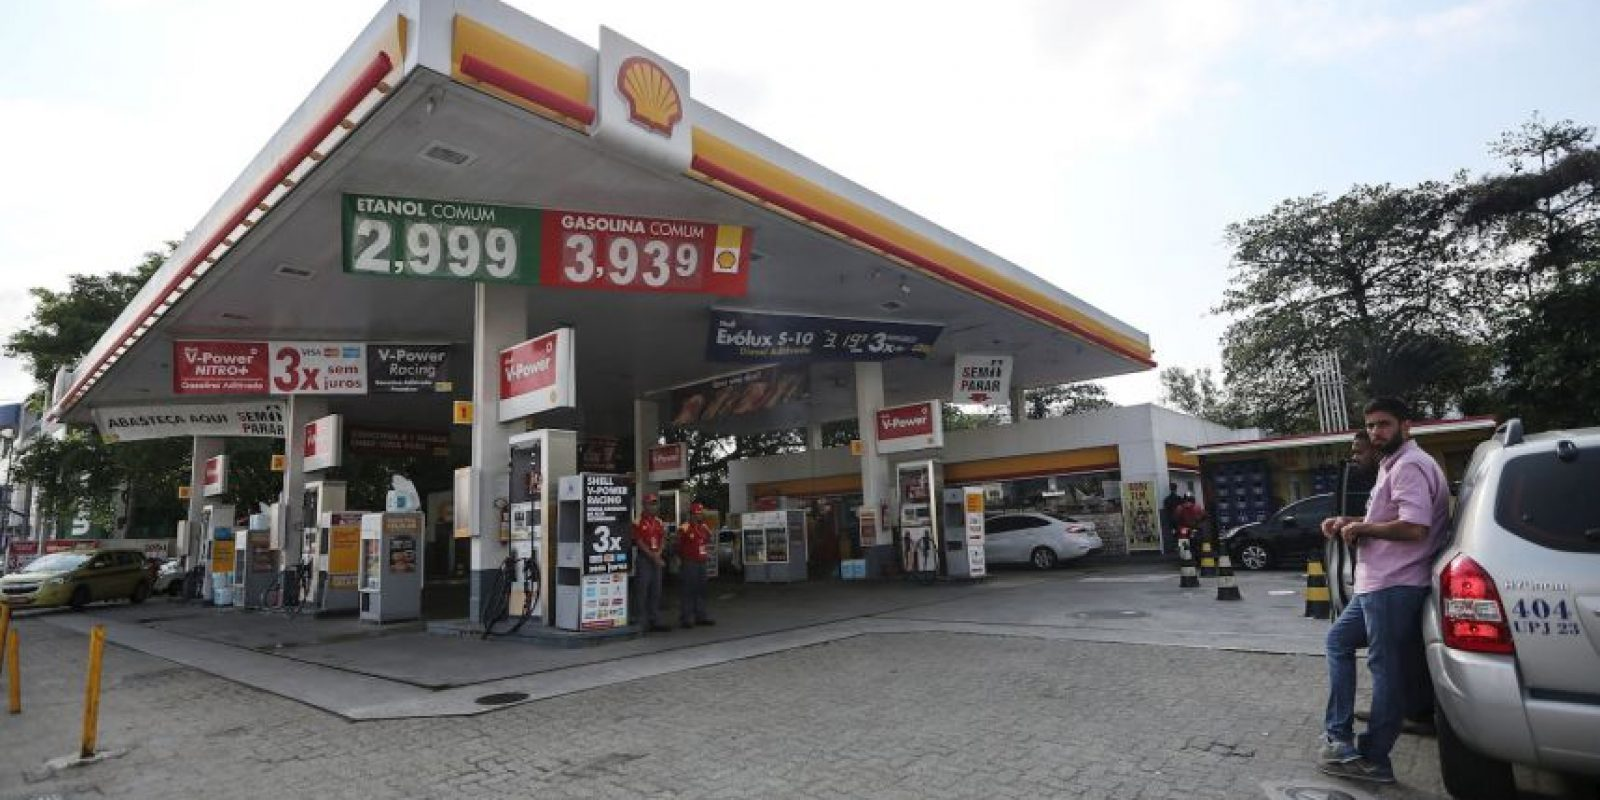 Getty Images Foto: Orinó en las paredes de una gasolinera